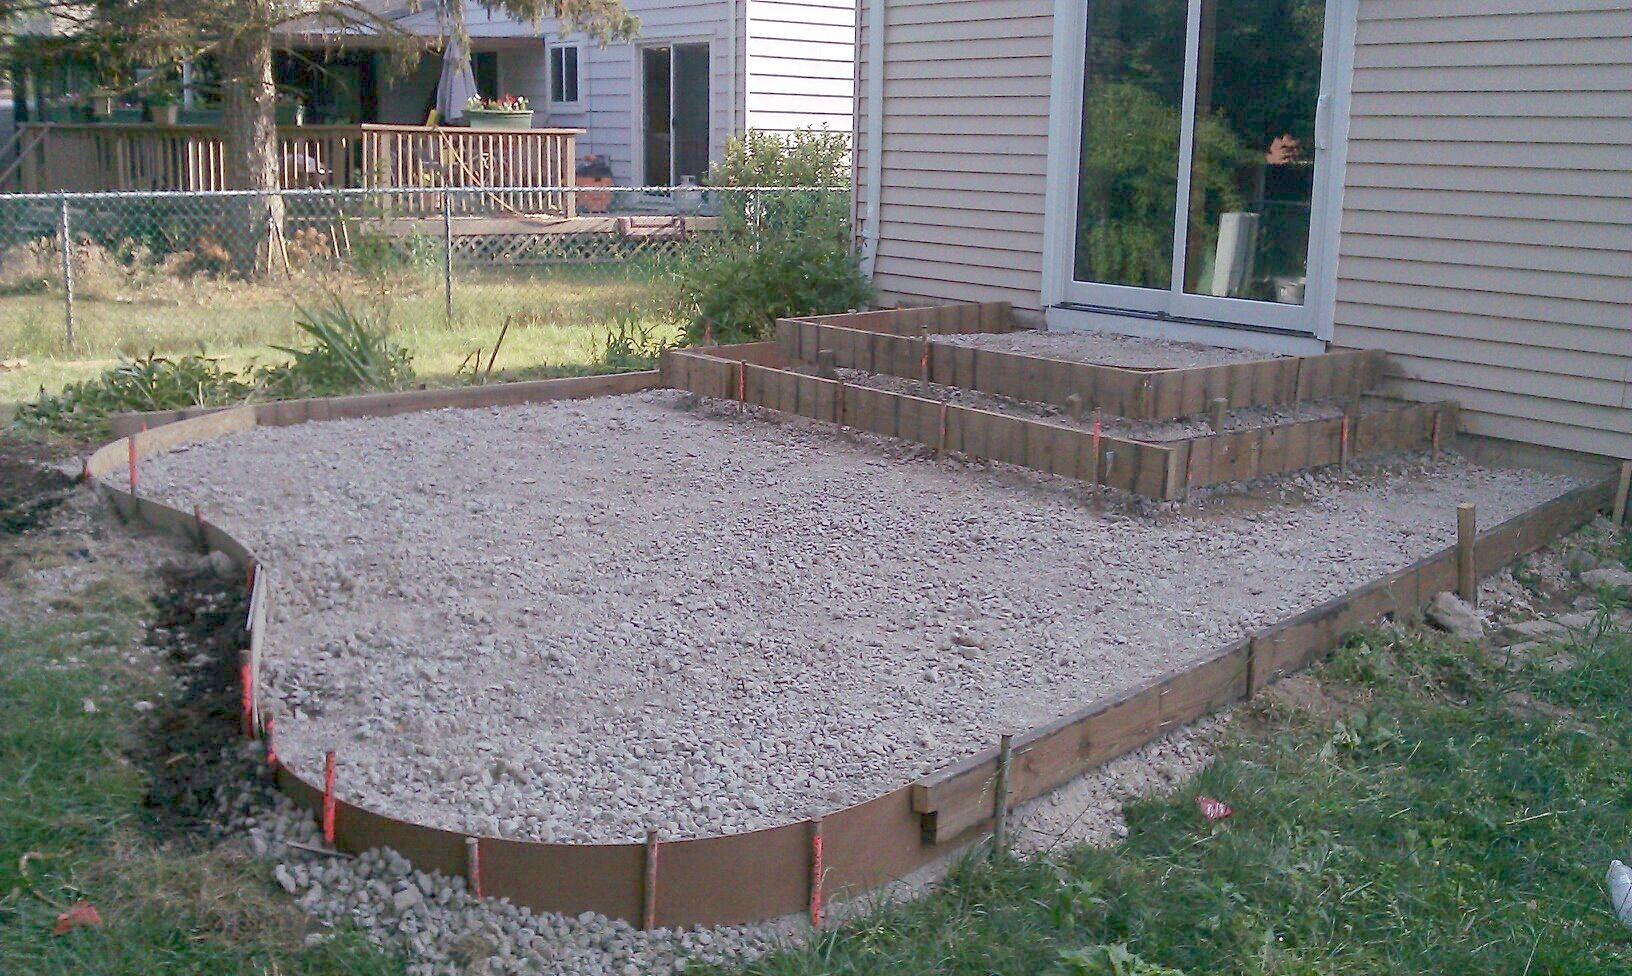 Poured Concrete Patio Designs | ... patio and steps were framed ...